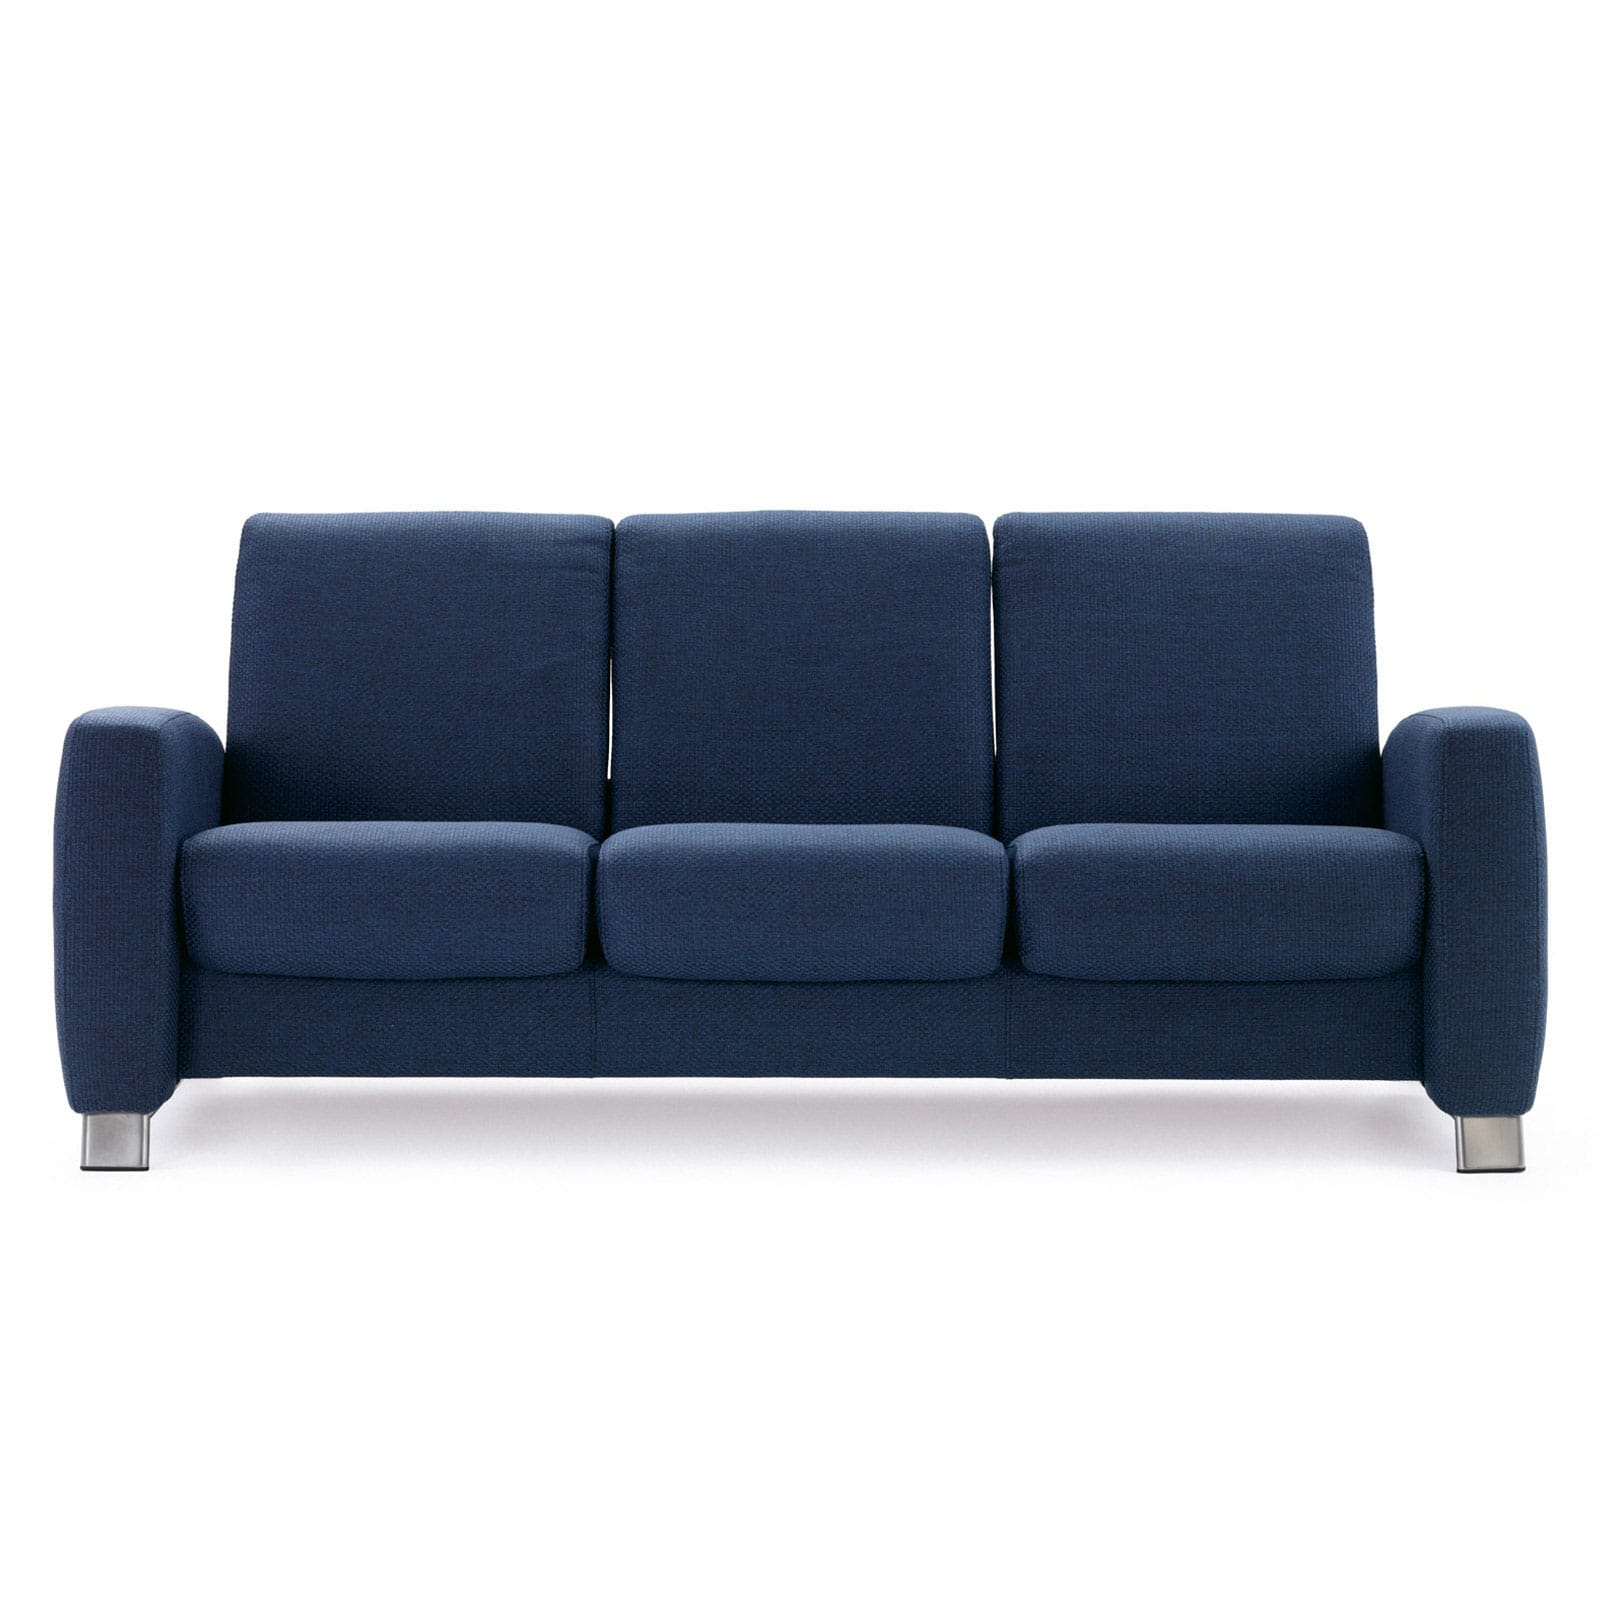 stressless sofa 3 sitzer arion m niedrig blue stahl. Black Bedroom Furniture Sets. Home Design Ideas